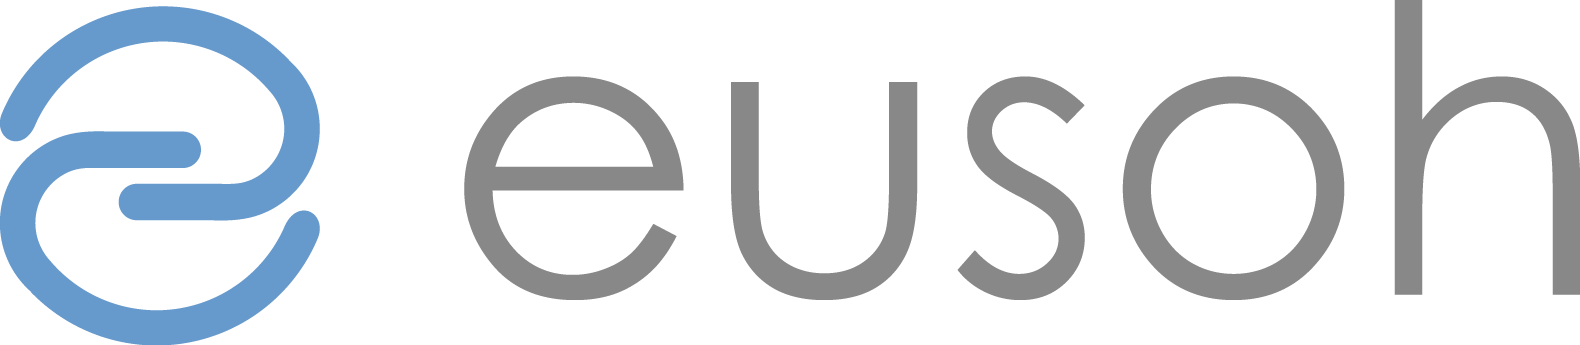 Eusoh Help Center home page